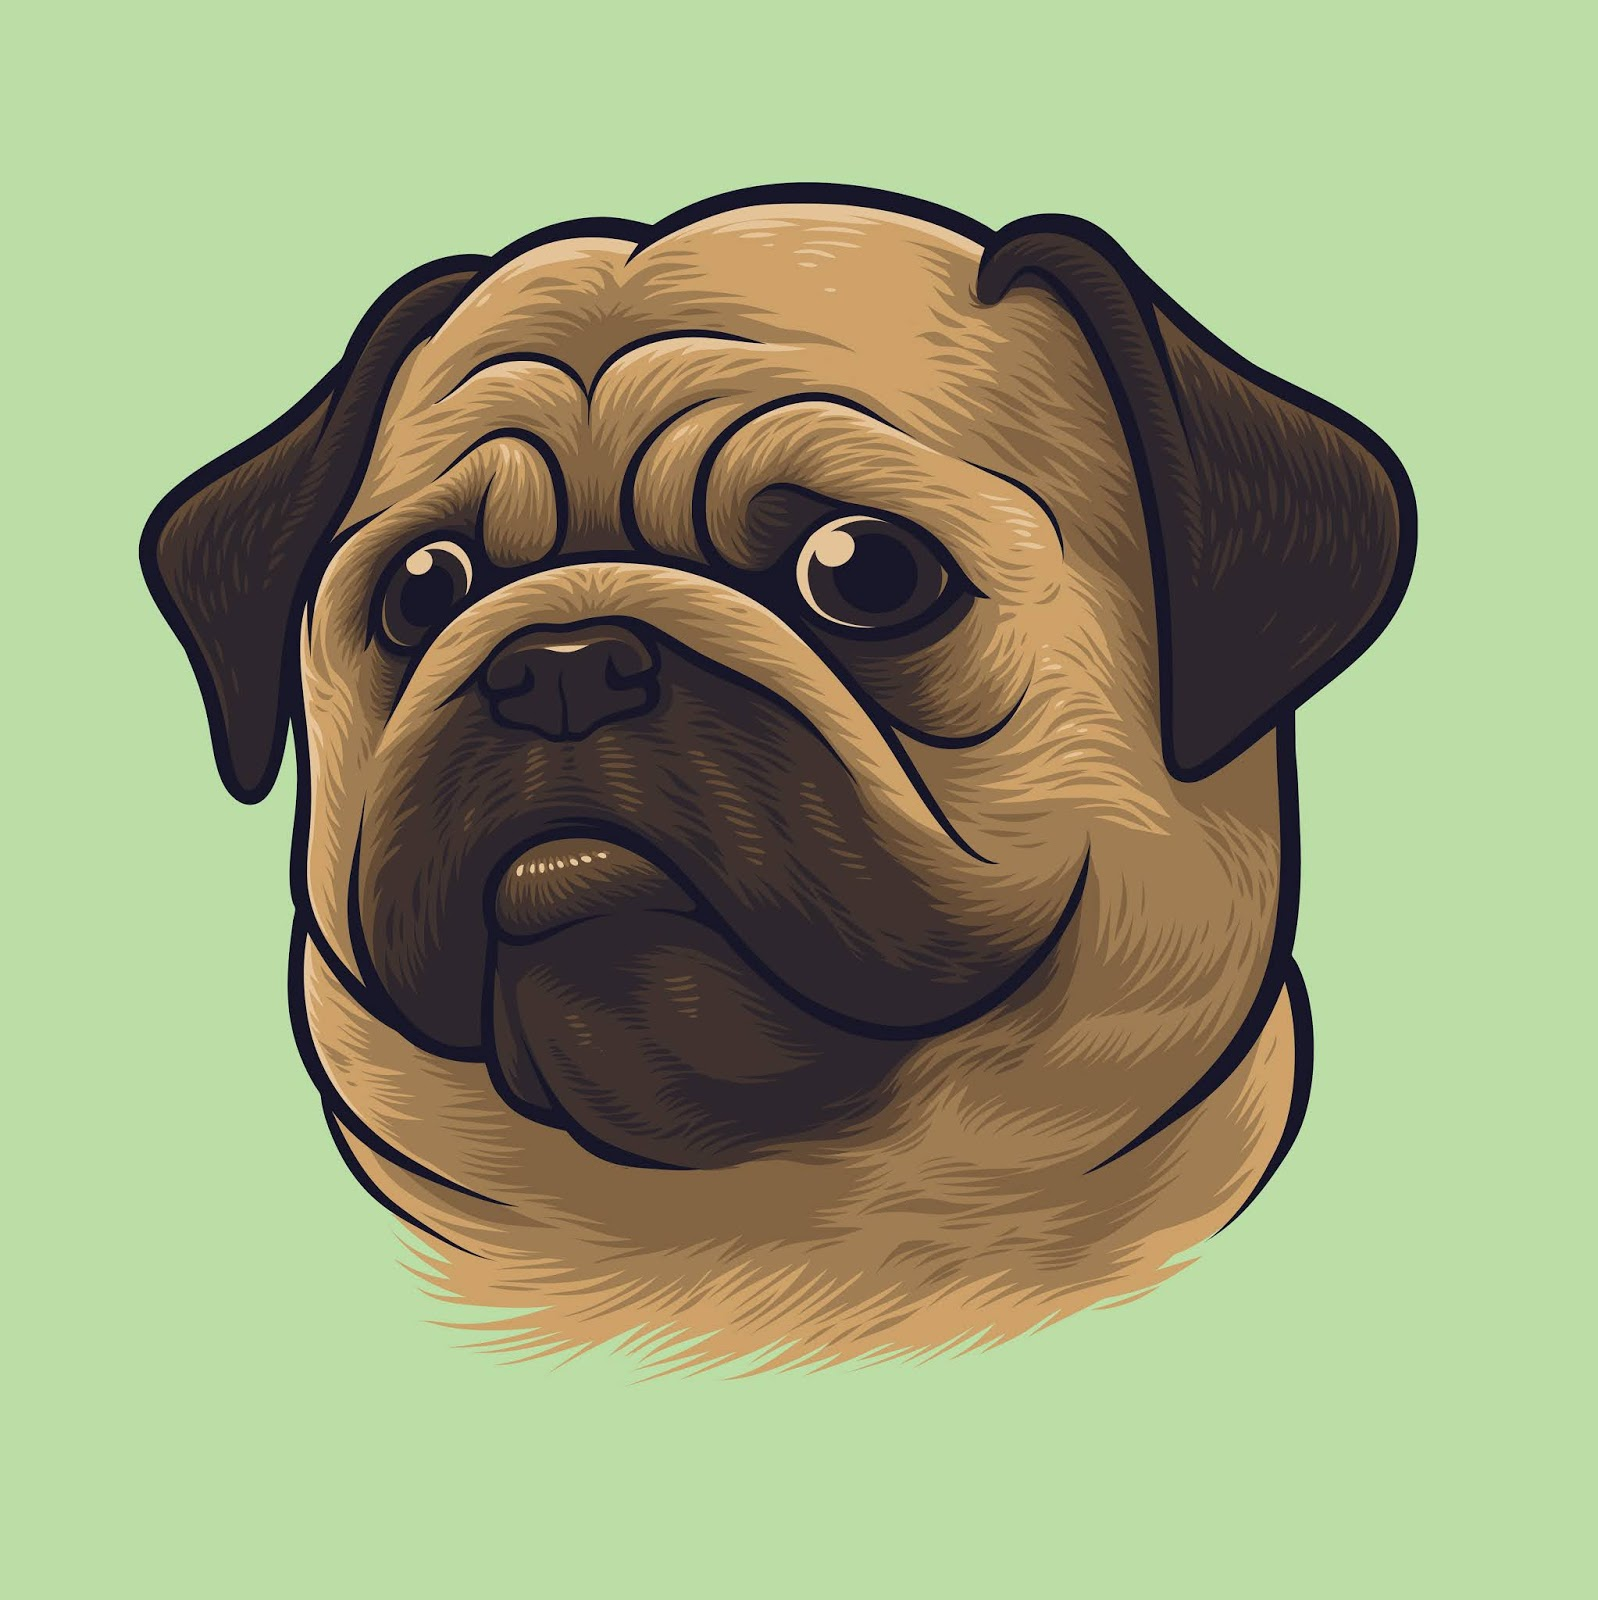 Pug Dog Portrait Free Download Vector CDR, AI, EPS and PNG Formats